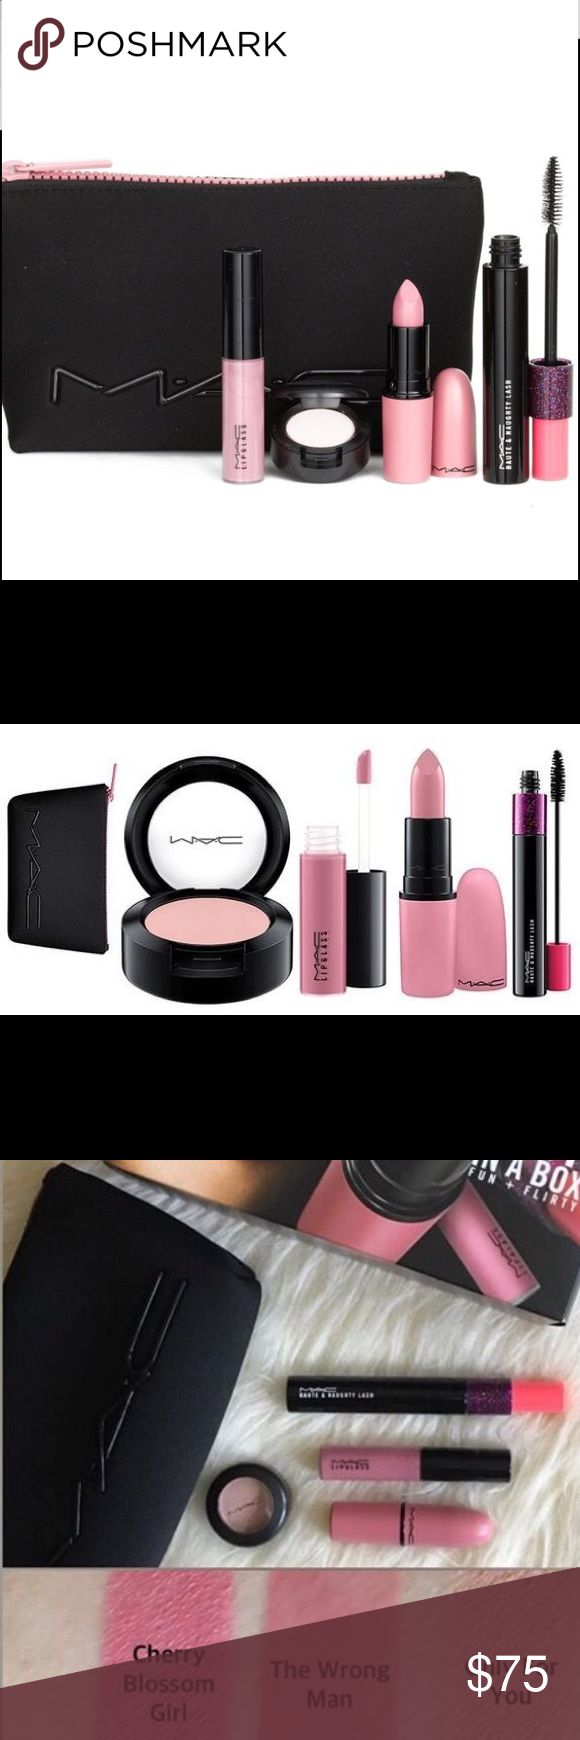 MAC Look in a Box - Fun & Flirty Brand new in a box. SOLD OUT EVERYWHERE!! From Nordstroms Anniversary Sale 2016. If interested, please make an offer or I can discount more via PyPal. Comes with a zip-top pouch to stash your makeup in for quick touch-ups wherever you go.  Kit includes:  - Full-size Eyeshadow in The Wrong Man (0.05 oz.)  - Full-size Haute & Naughty Lash Mascara (0.33 oz.)  - Full-size Lipstick in Cherry Blossom Girl (cremesheen finish) (0.1 oz.)  - Full-size Lipglass in Only…